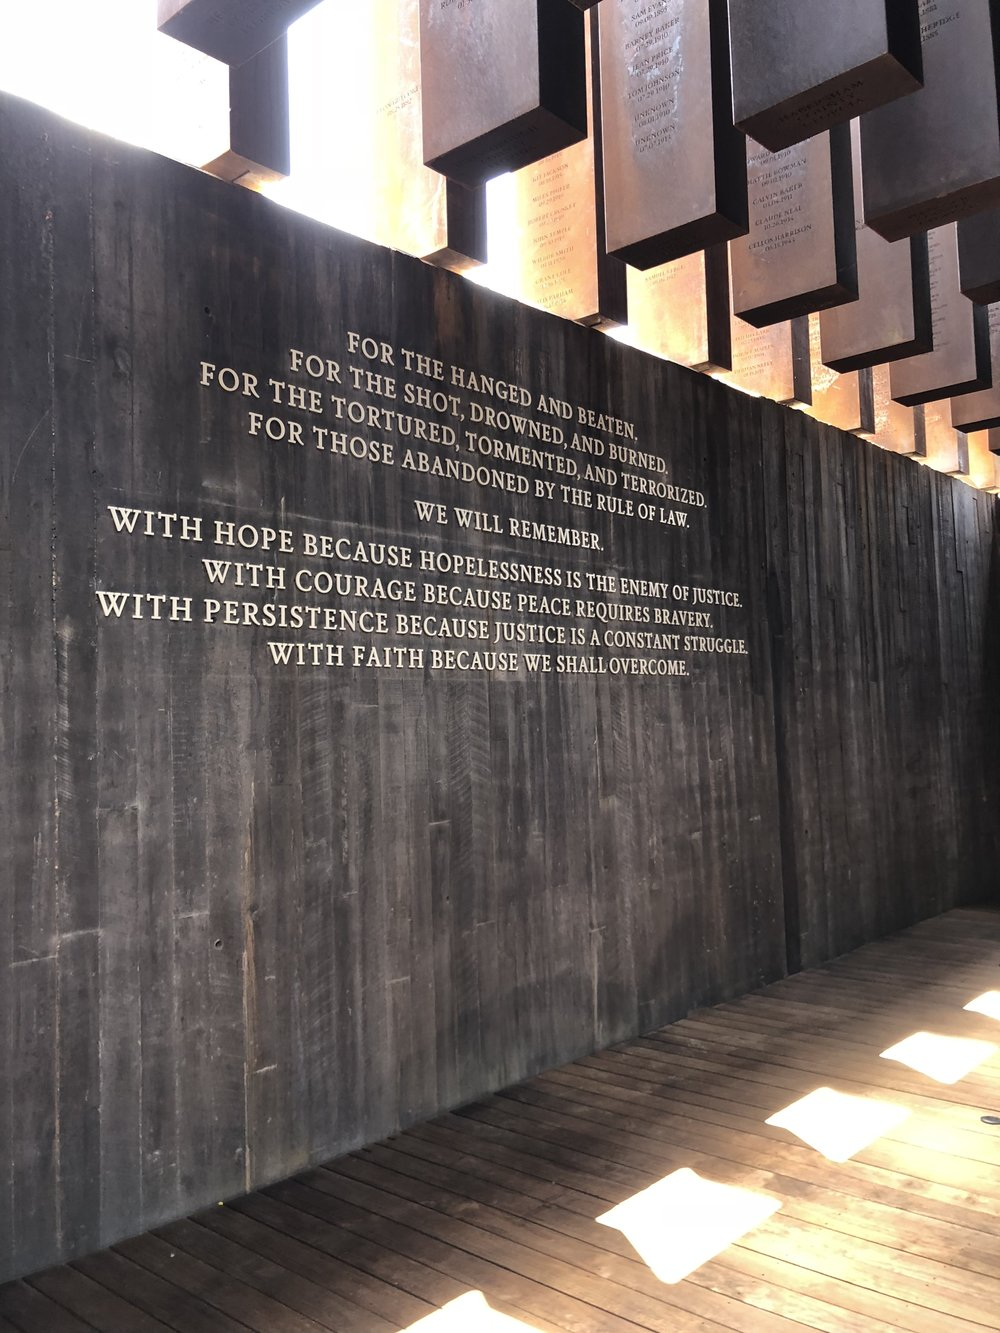 The National Memorial for Peace and Justice | Equal Justice Initiative (Photo by Annie Blaine)